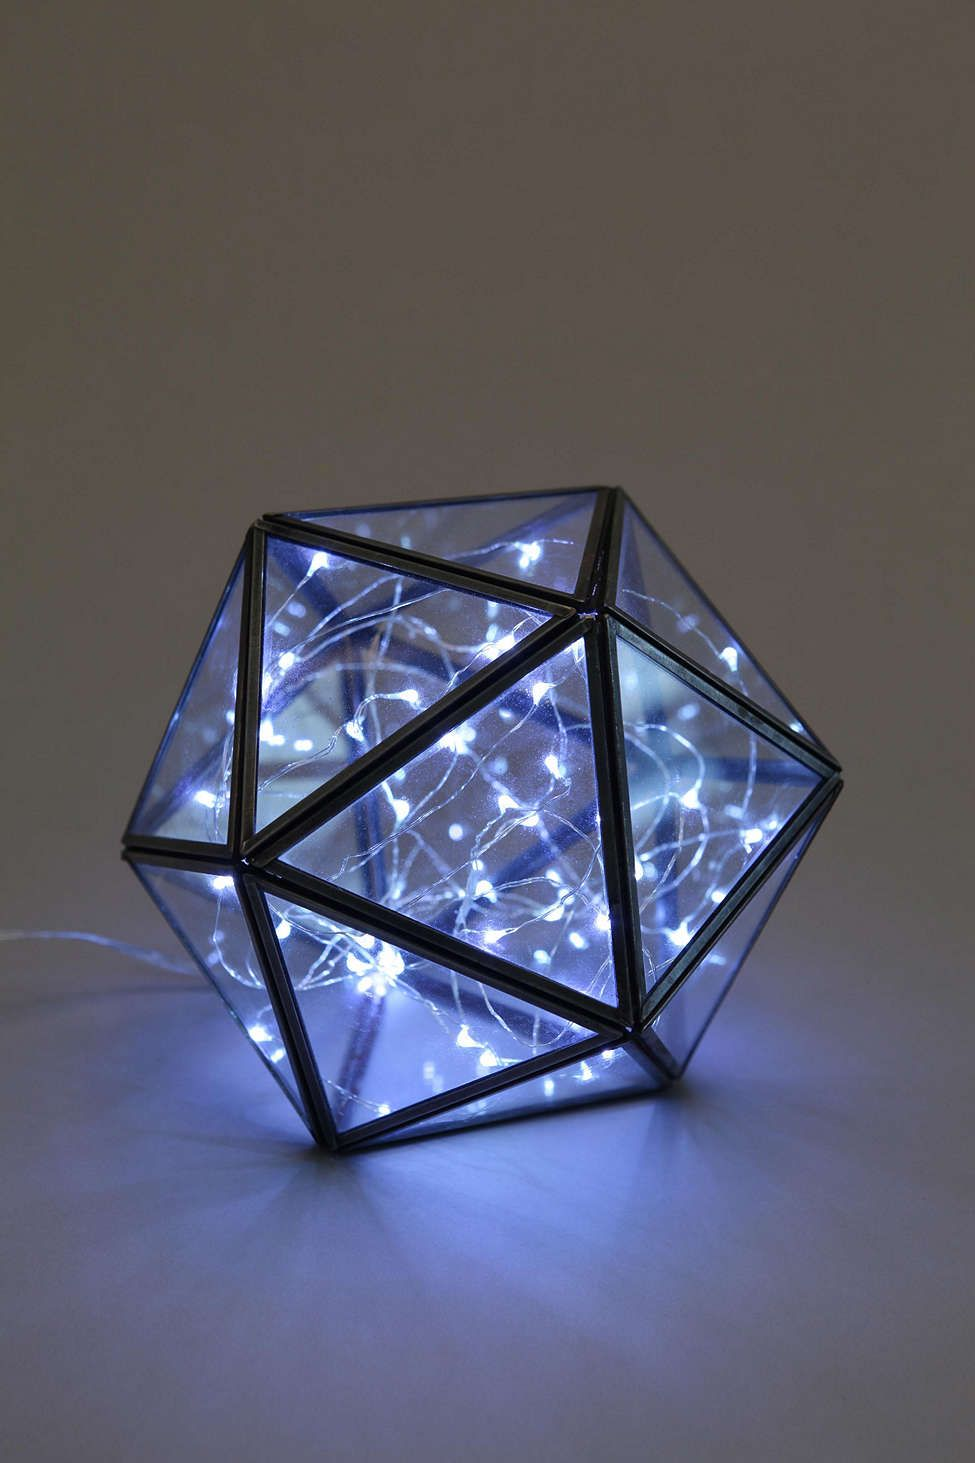 Turning triangles terrarium light up my life pinterest hogar